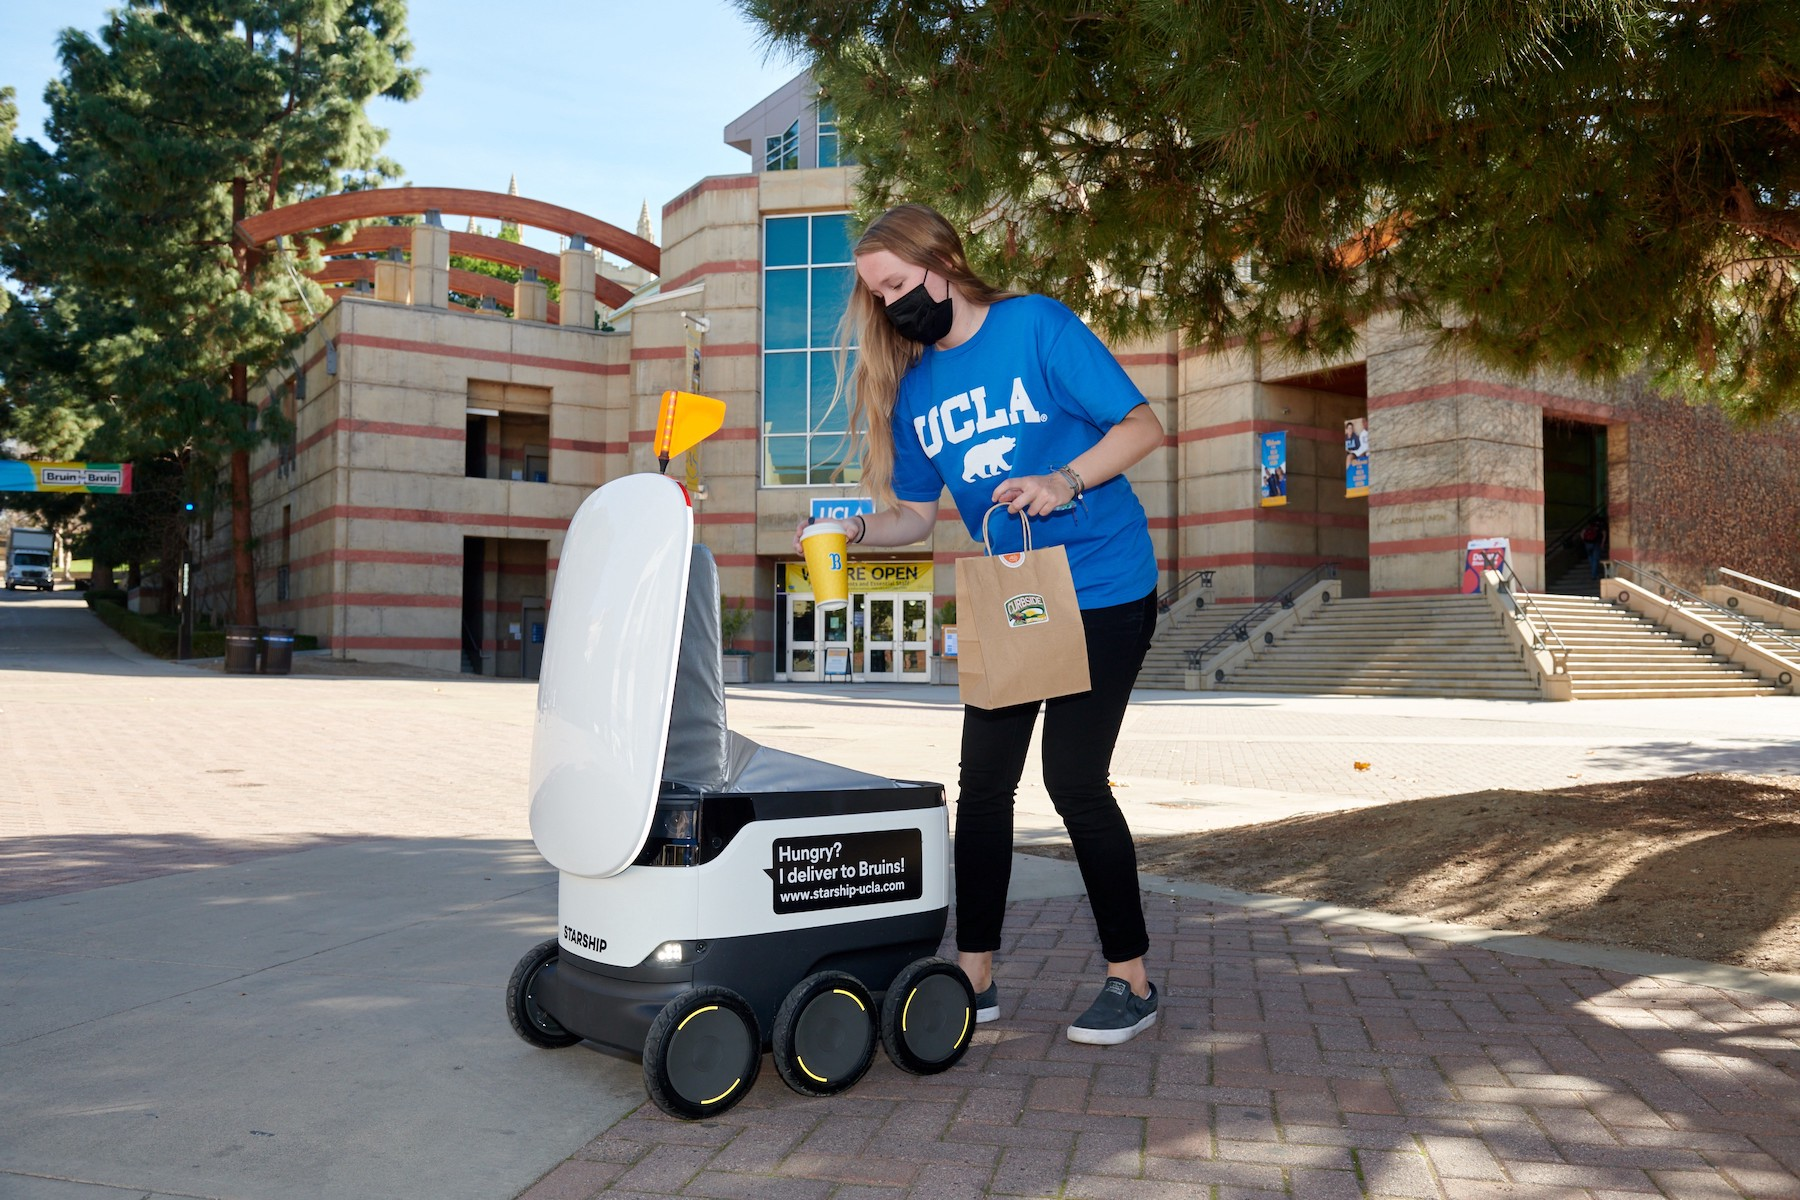 Autonomous robots, BOPIS and curbside pickup, smart lockers and visibility tools are leading the last-mile delivery push, says Coresight.